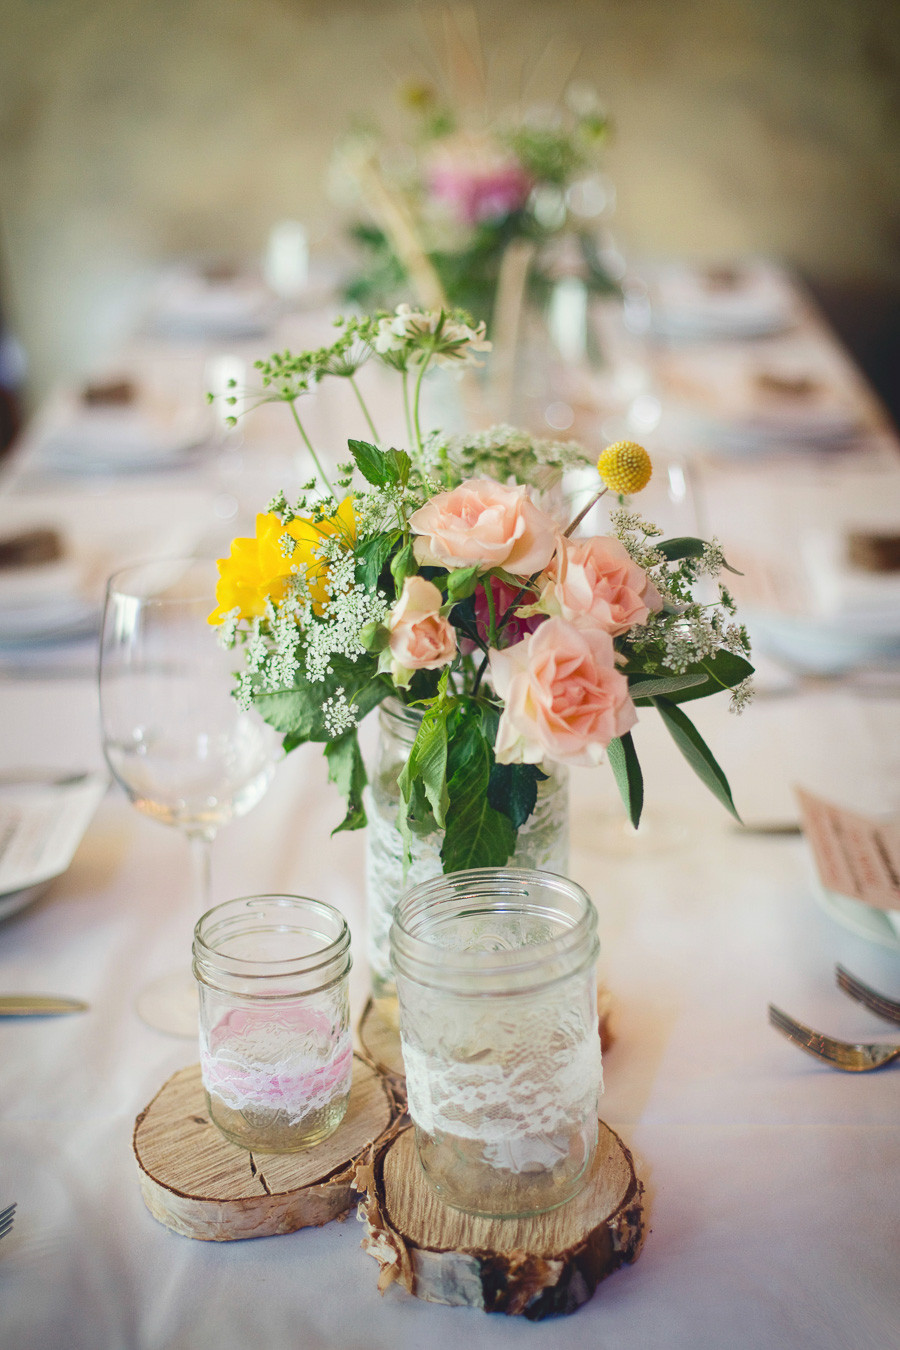 A table set at a rustic Italian inspired wedding with romantic garden flowers, wooden rounds, and mason jars wrapped with lace awaits guests.